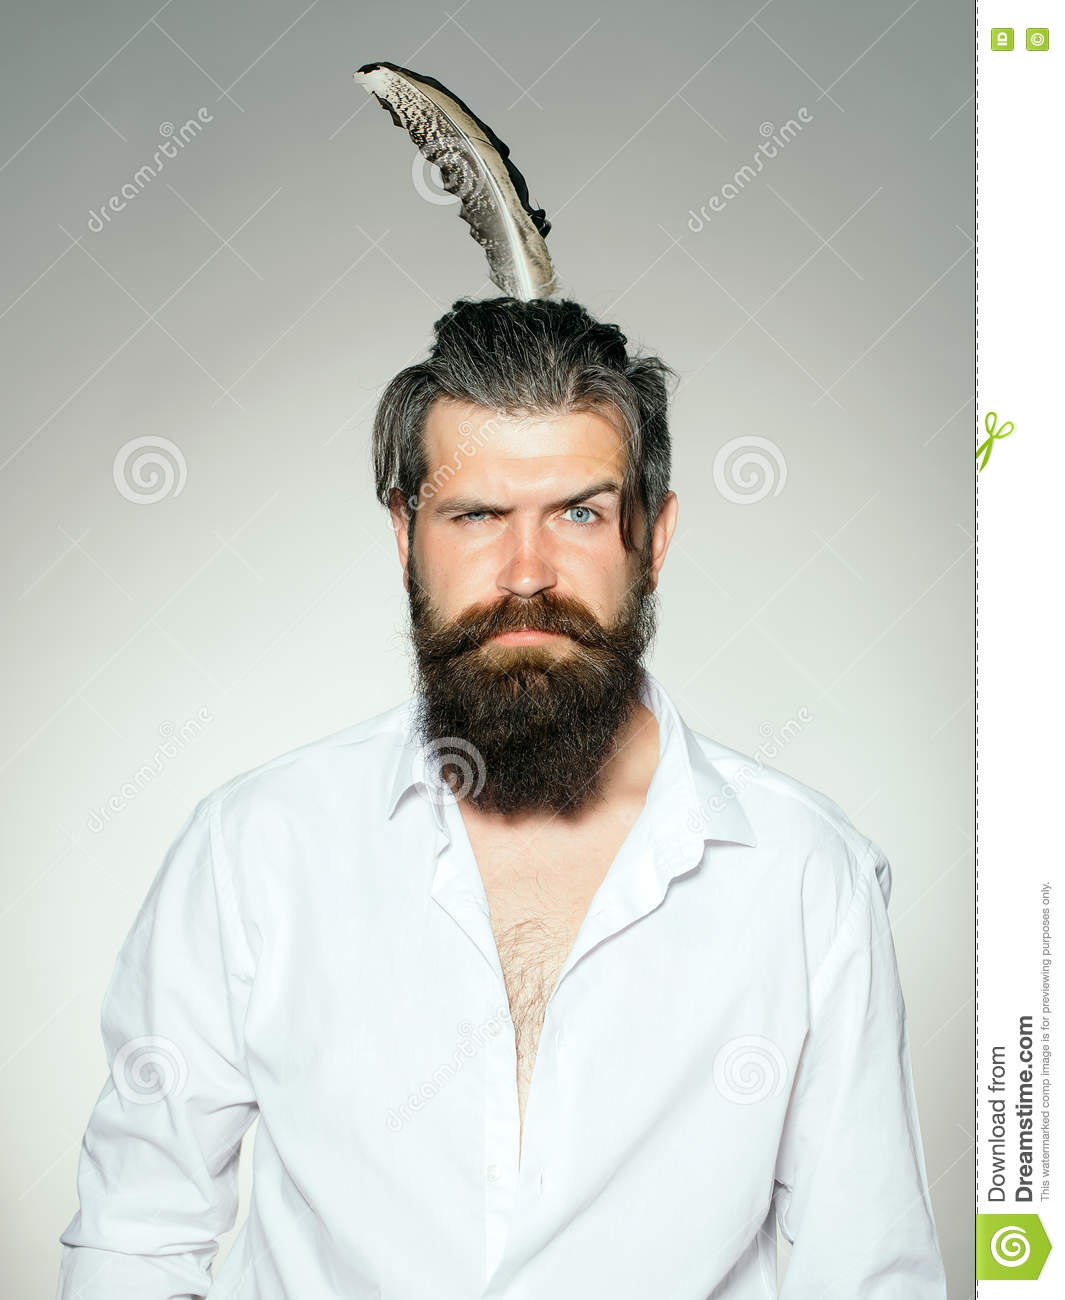 Beards big stylish rare photo